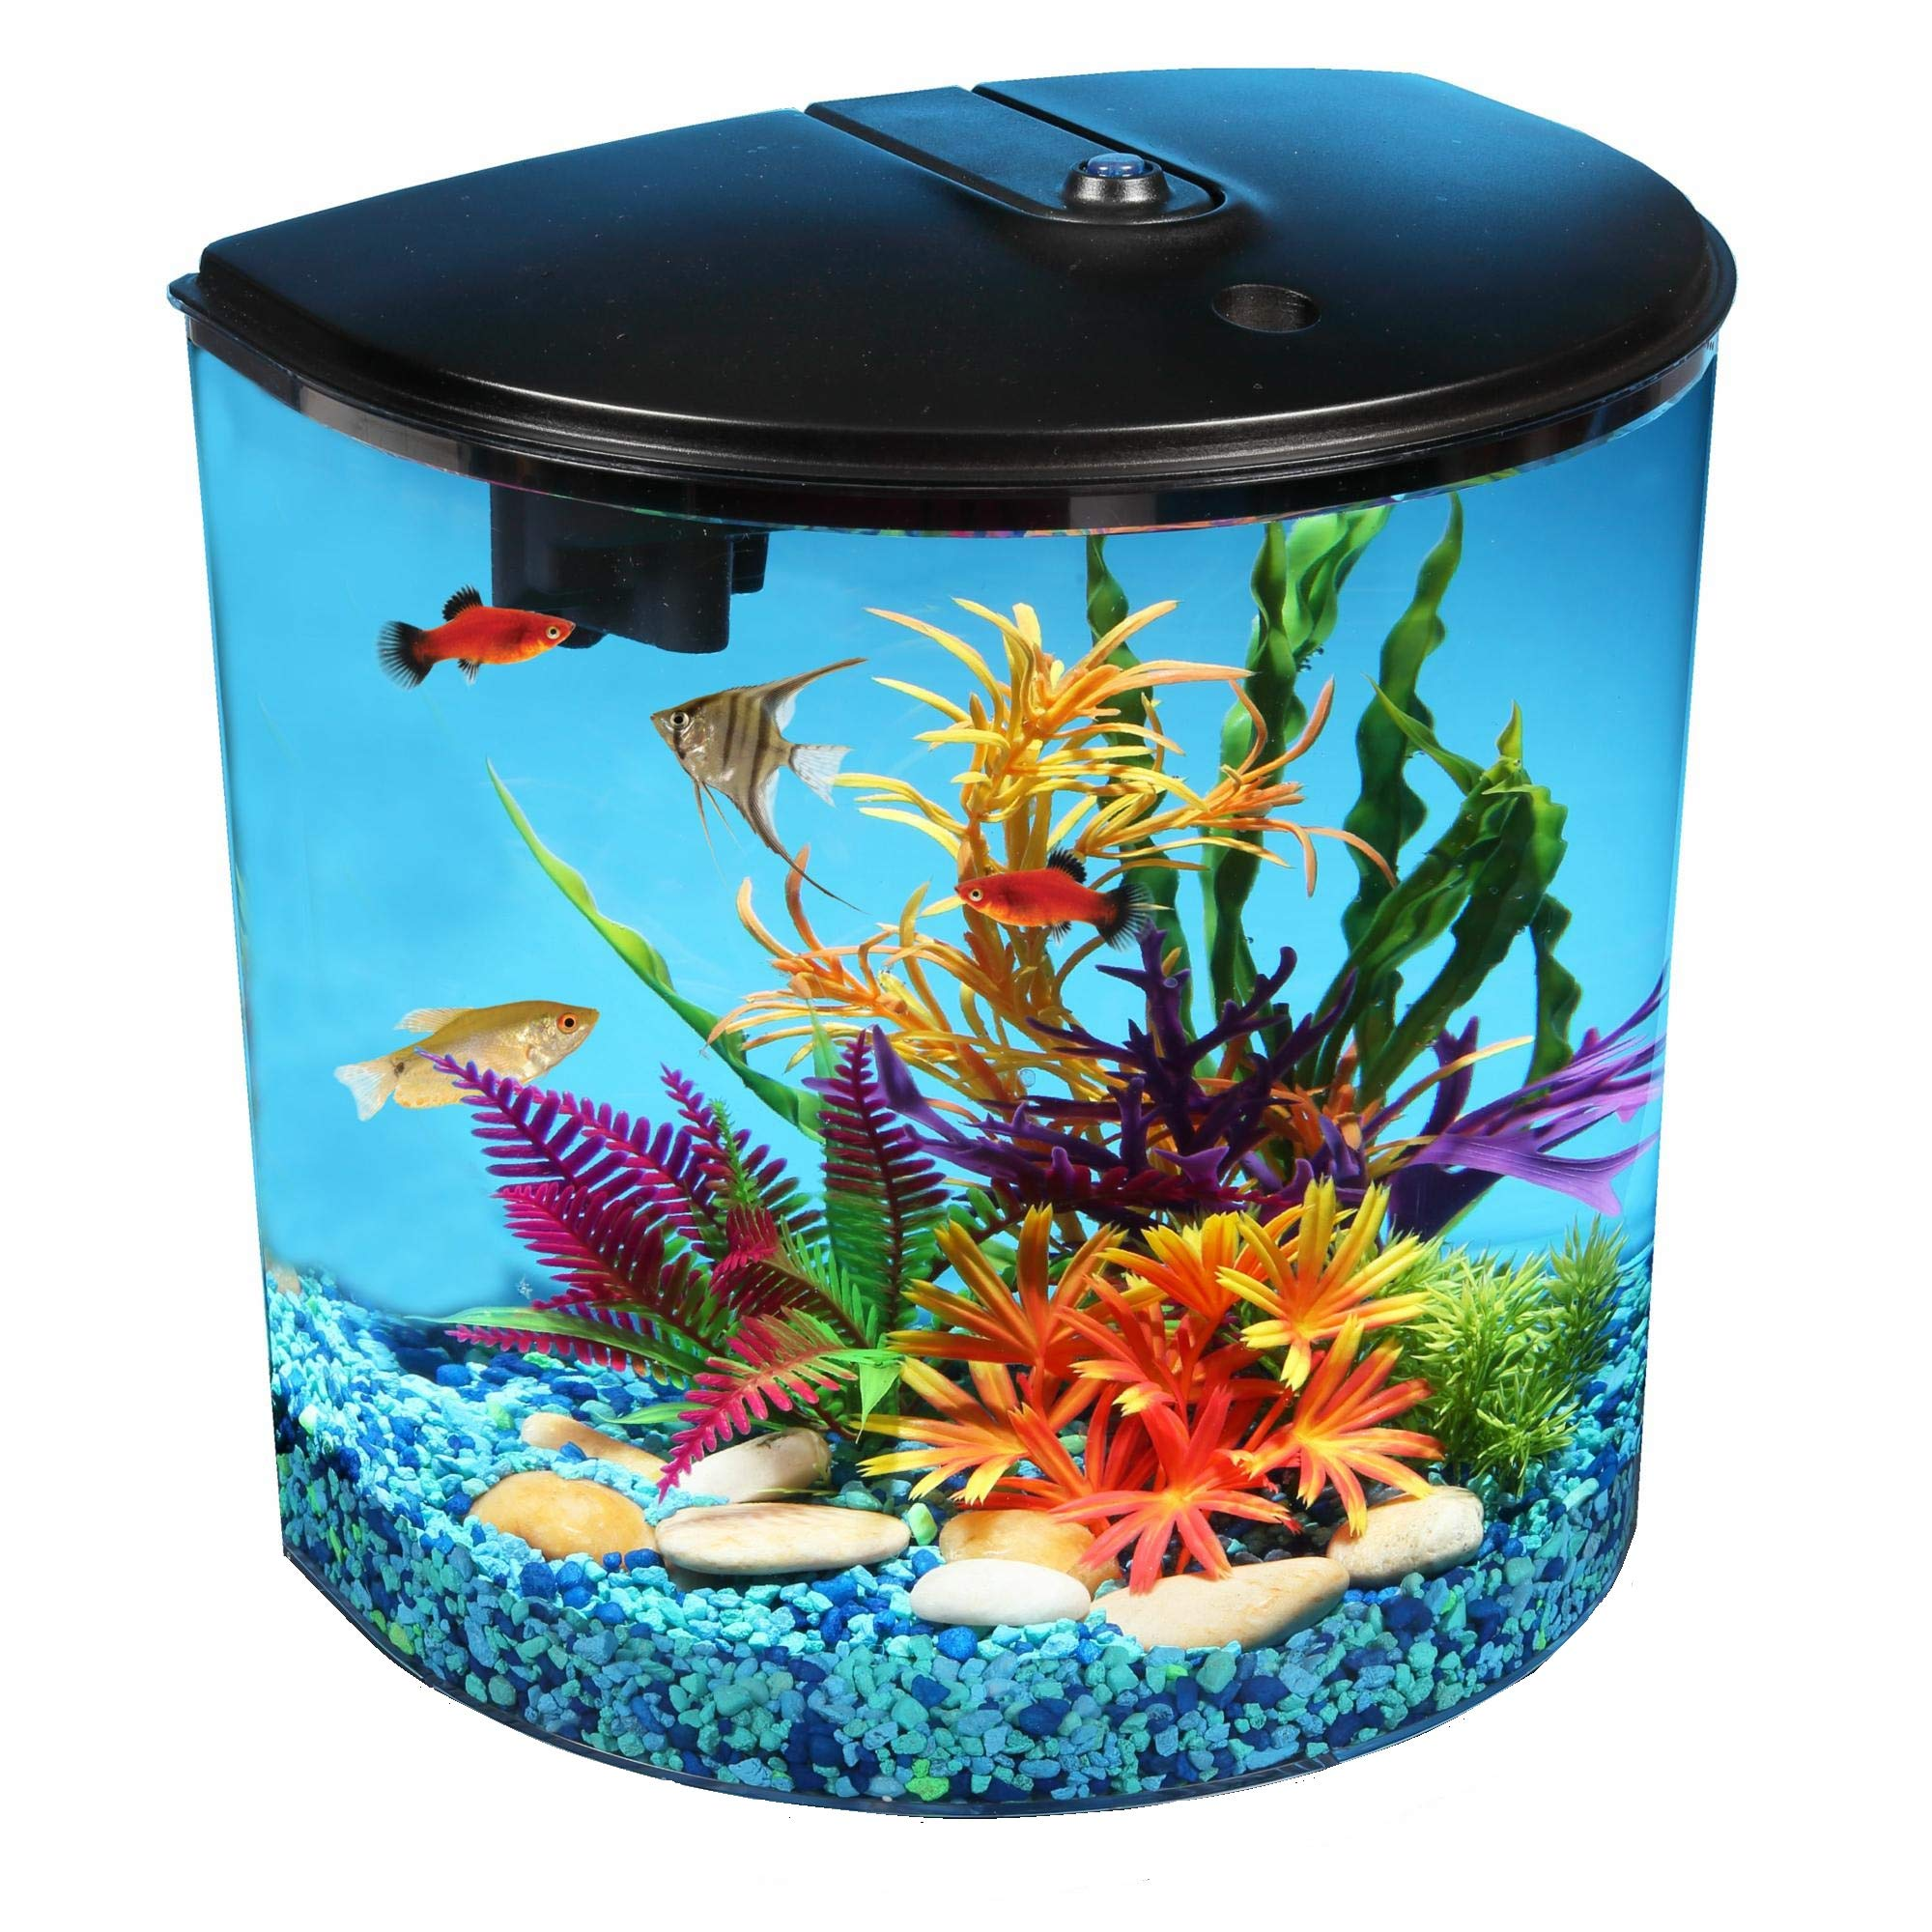 Koller Products 3.5-Gallon Aquarium Kit with Power Filter and LED Lighting, (AP35000BLK) by Koller Products